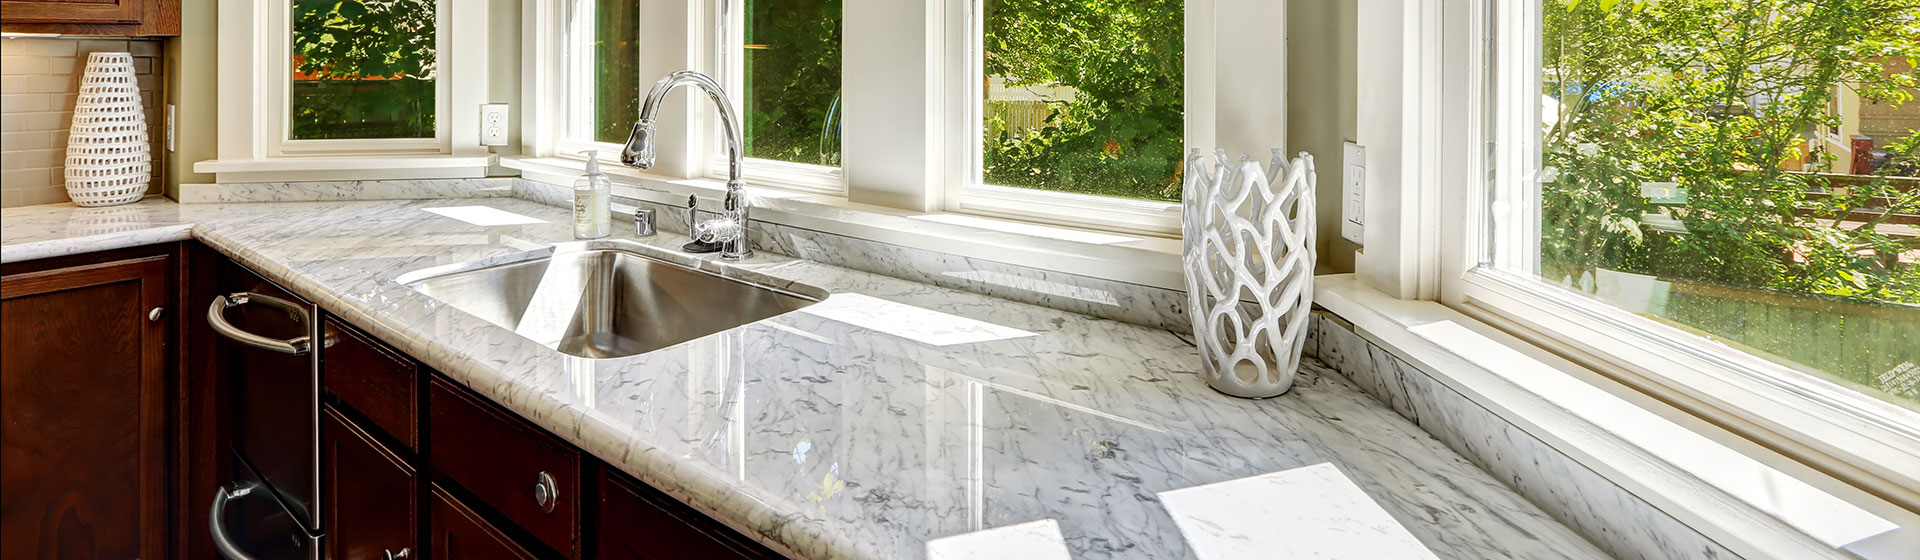 cleveland clean assure and top kitchen solon tops notch experience craftsmanship over with in counter years granite pictures ft marble quartz can quality we countertops customers our provide of